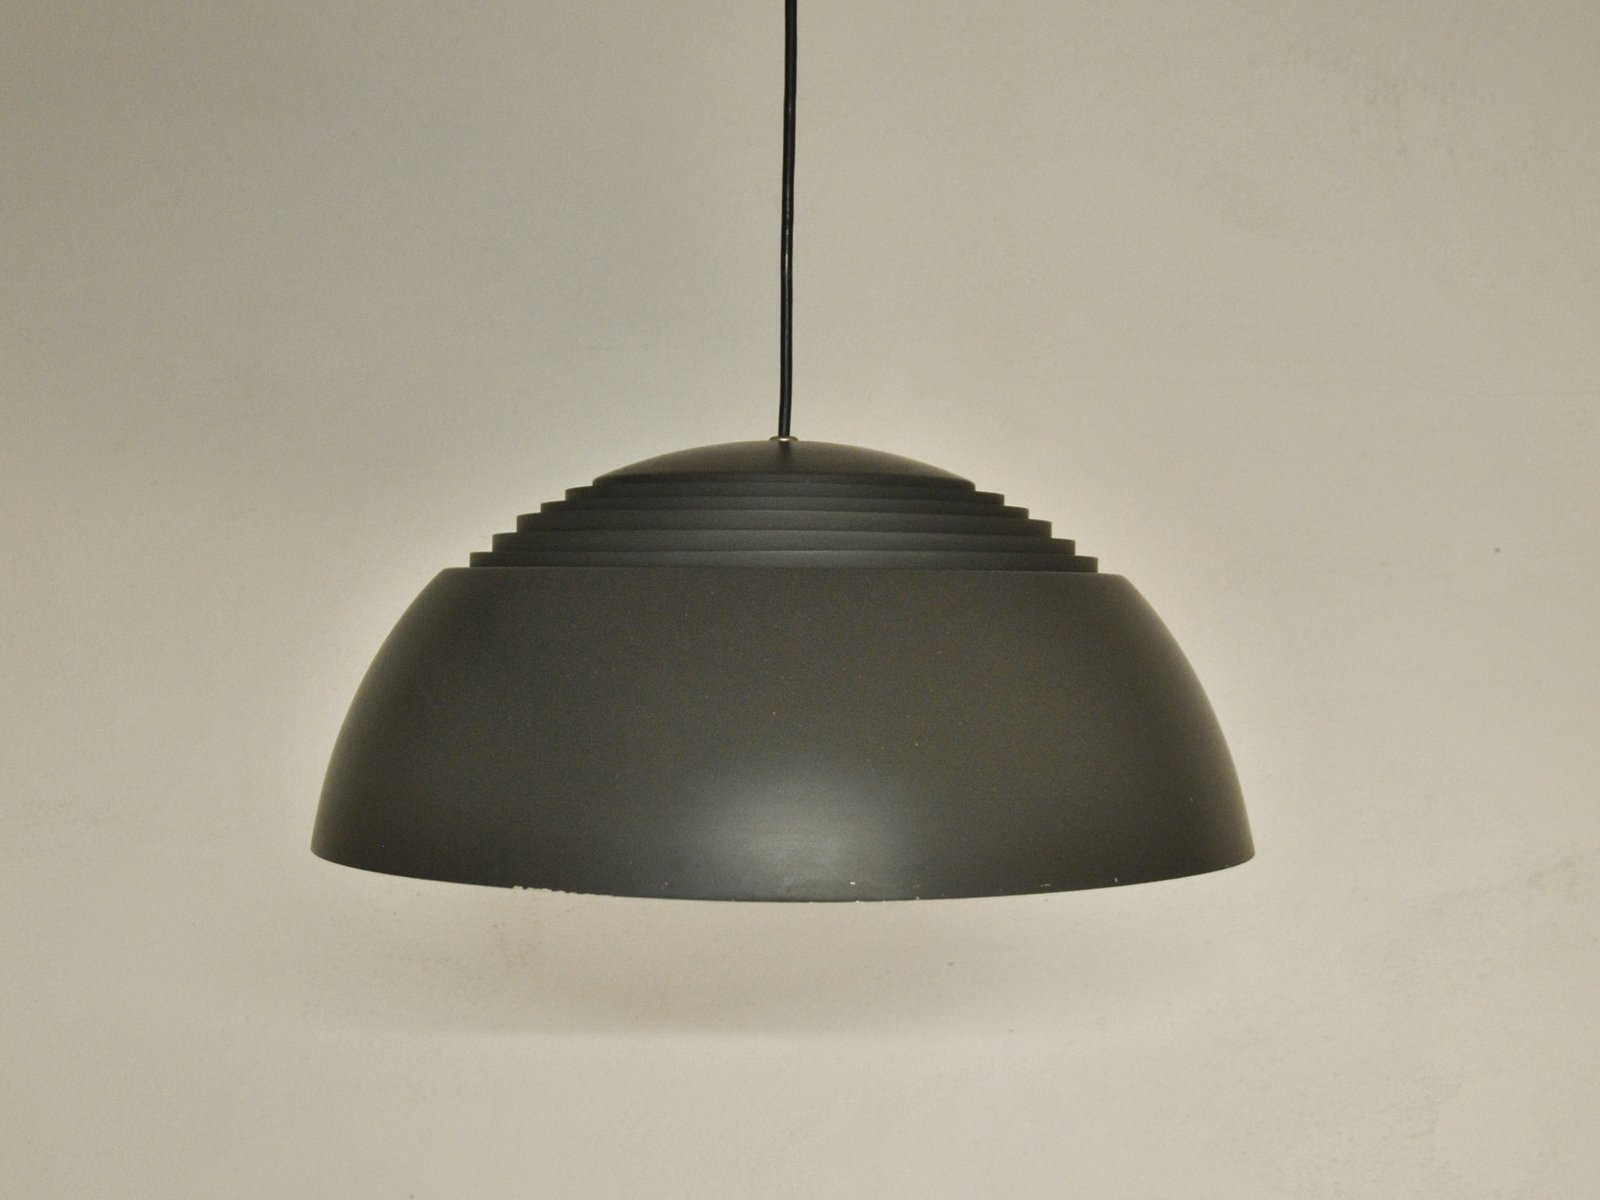 Brown aj royal lamp by arne jacobsen for louis poulsen for for Arne jacobsen nachbau